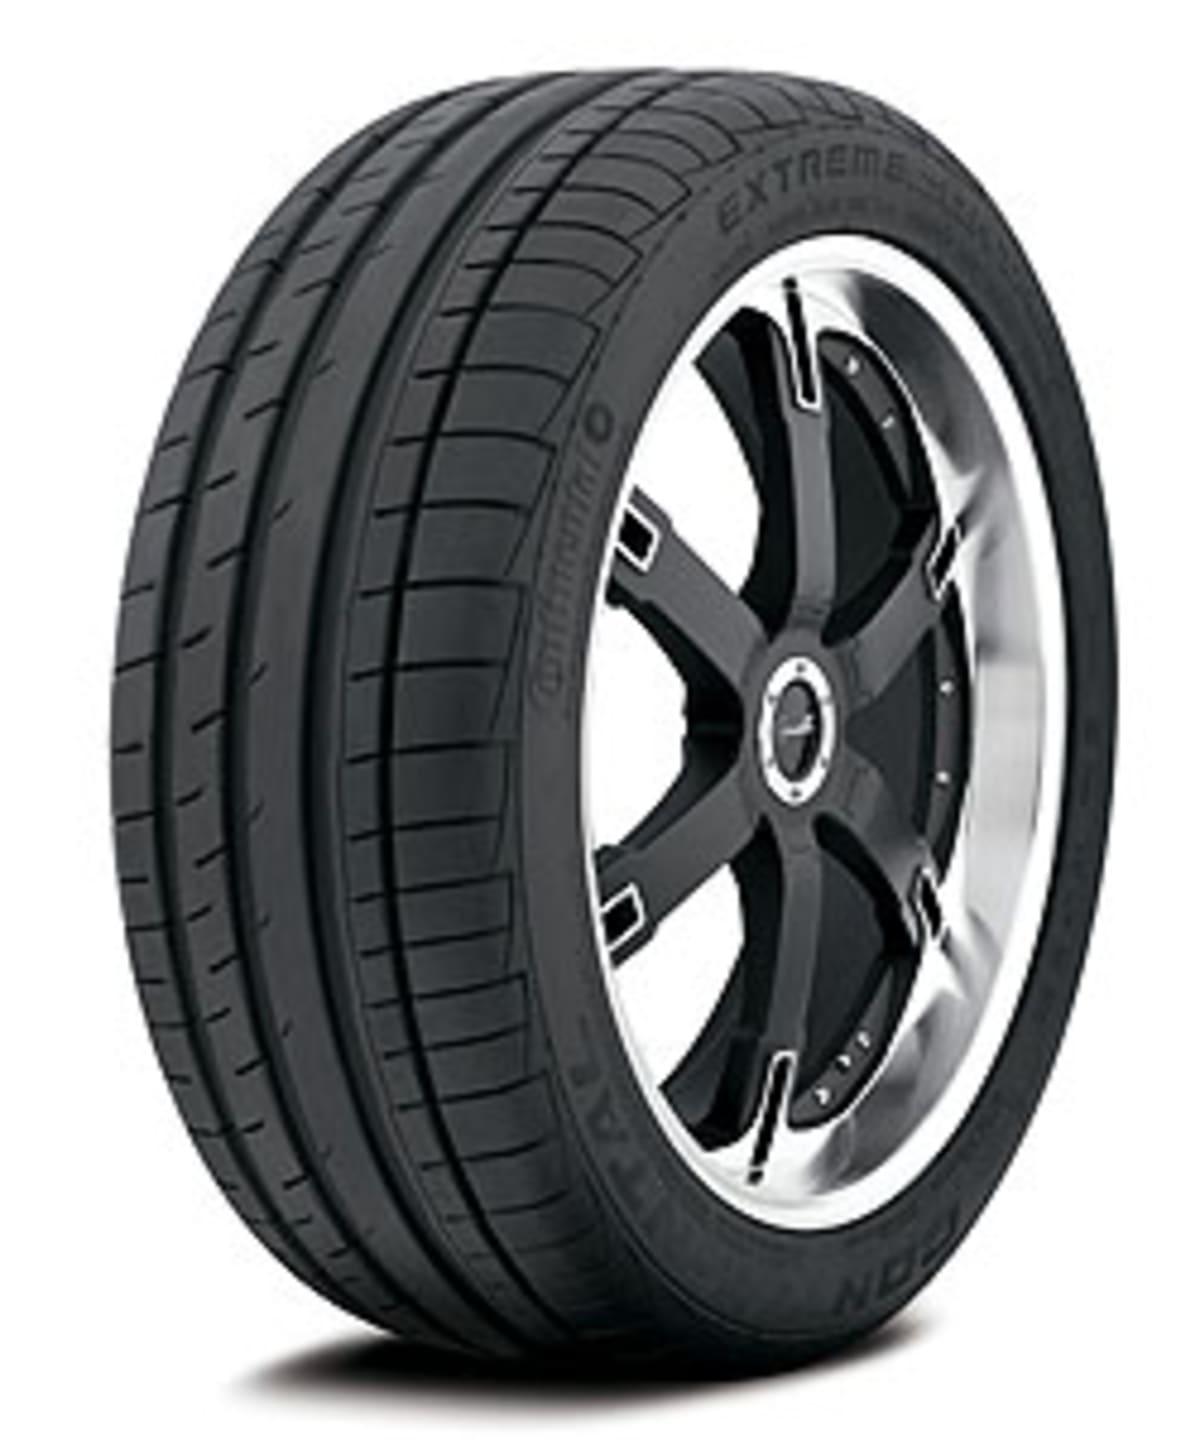 Continental Tire Extreme Contact DW